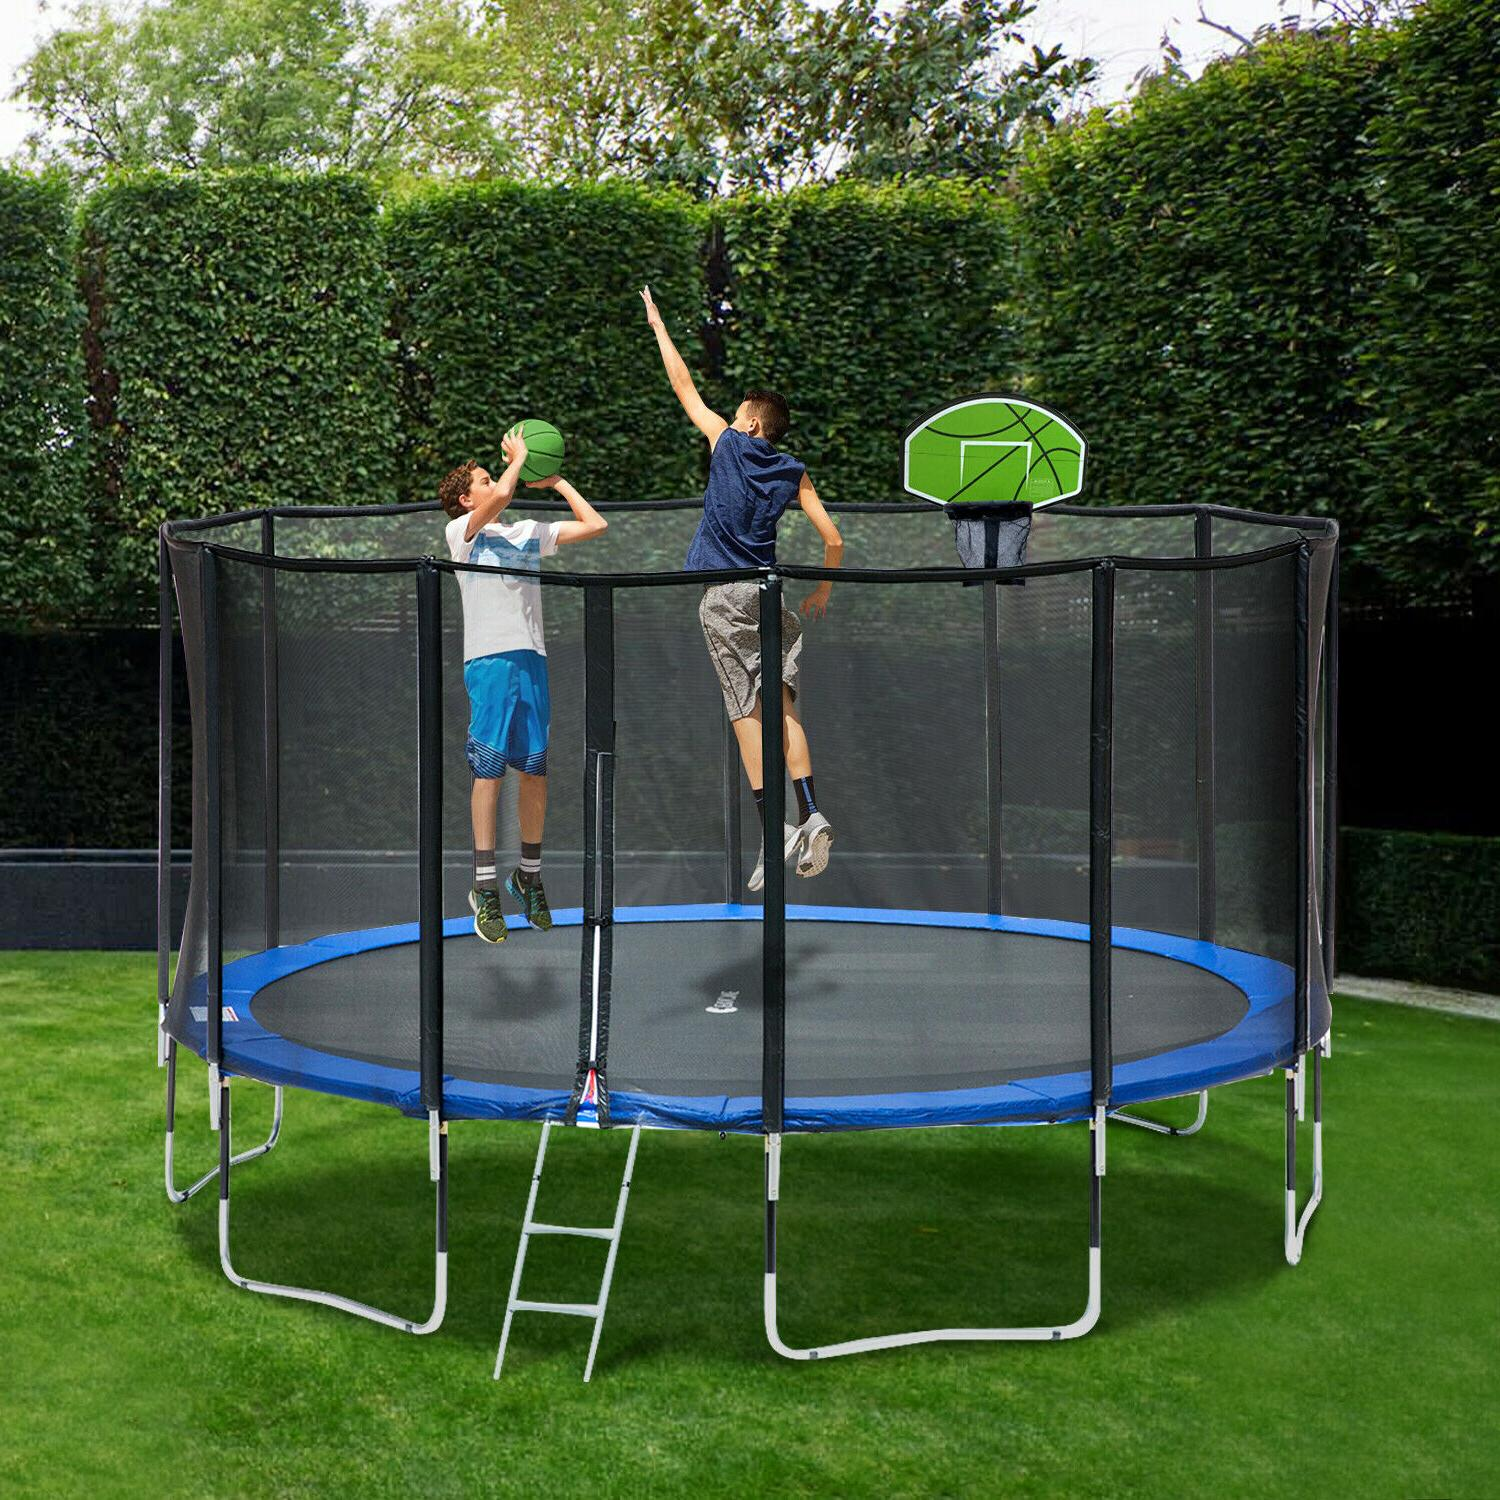 Exacme Trampoline with 400 Weight Limit& Carbon Fiber Top Pole